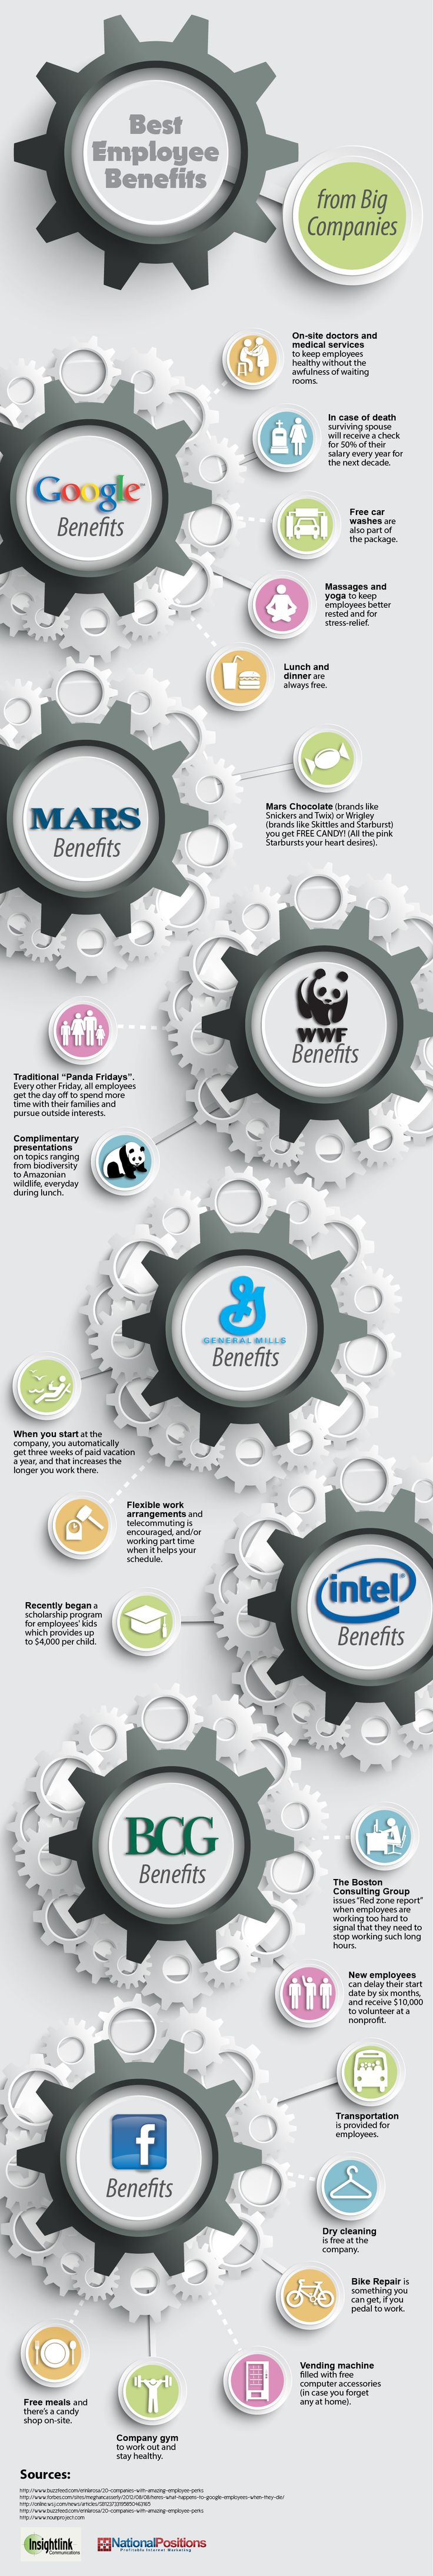 Best Employee Benefits From Big Companies   #infographic #EmployeeBenefits #BigCompanies